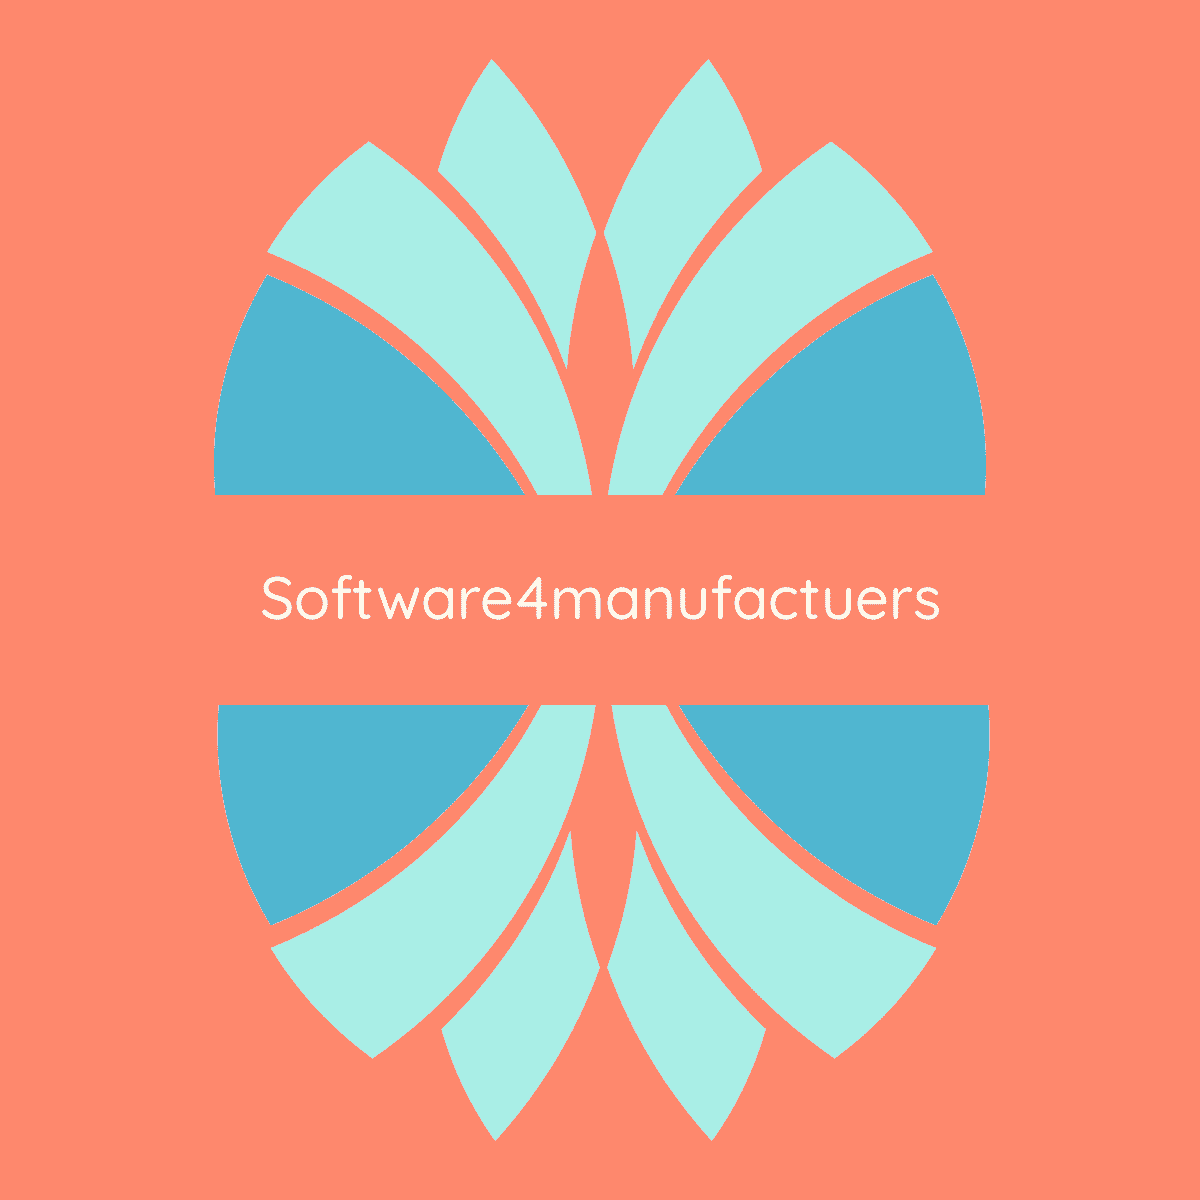 Software4manufactuers